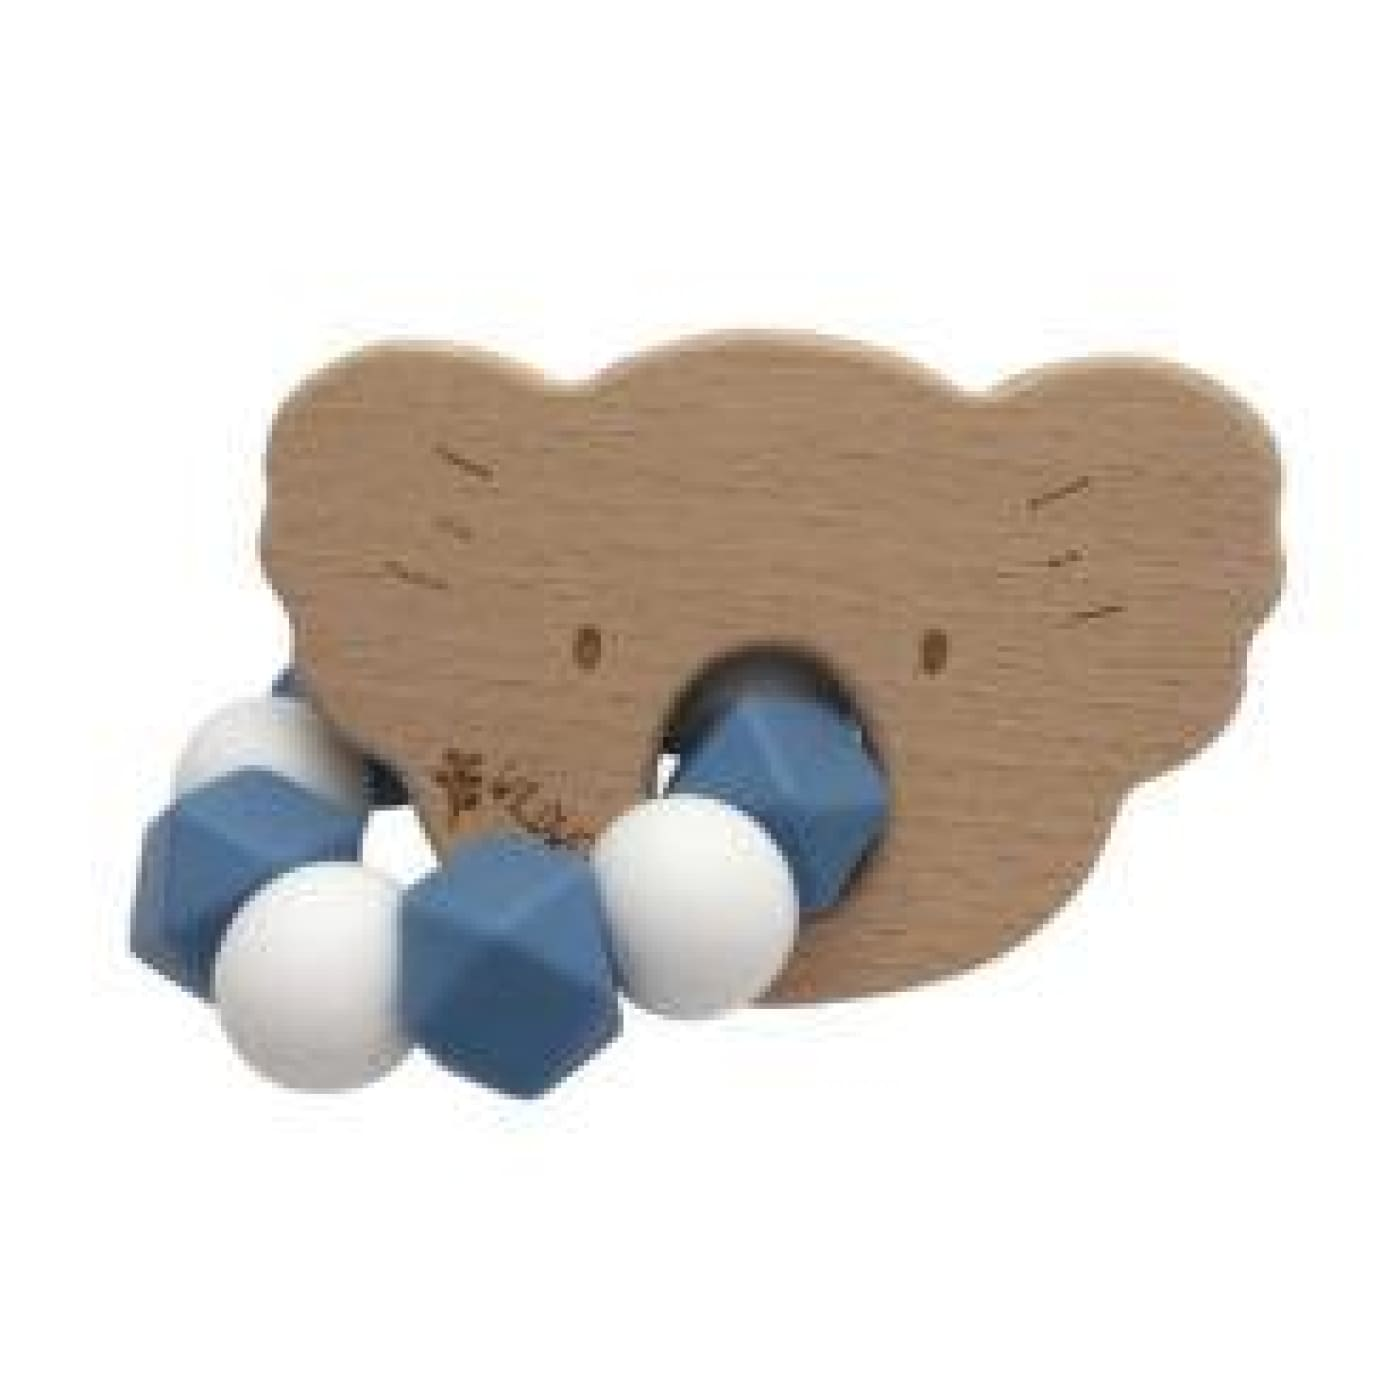 Wildwood Kids Teether - Koala Blue/White - NURSING & FEEDING - TEETHERS/TEETHING JEWELLERY